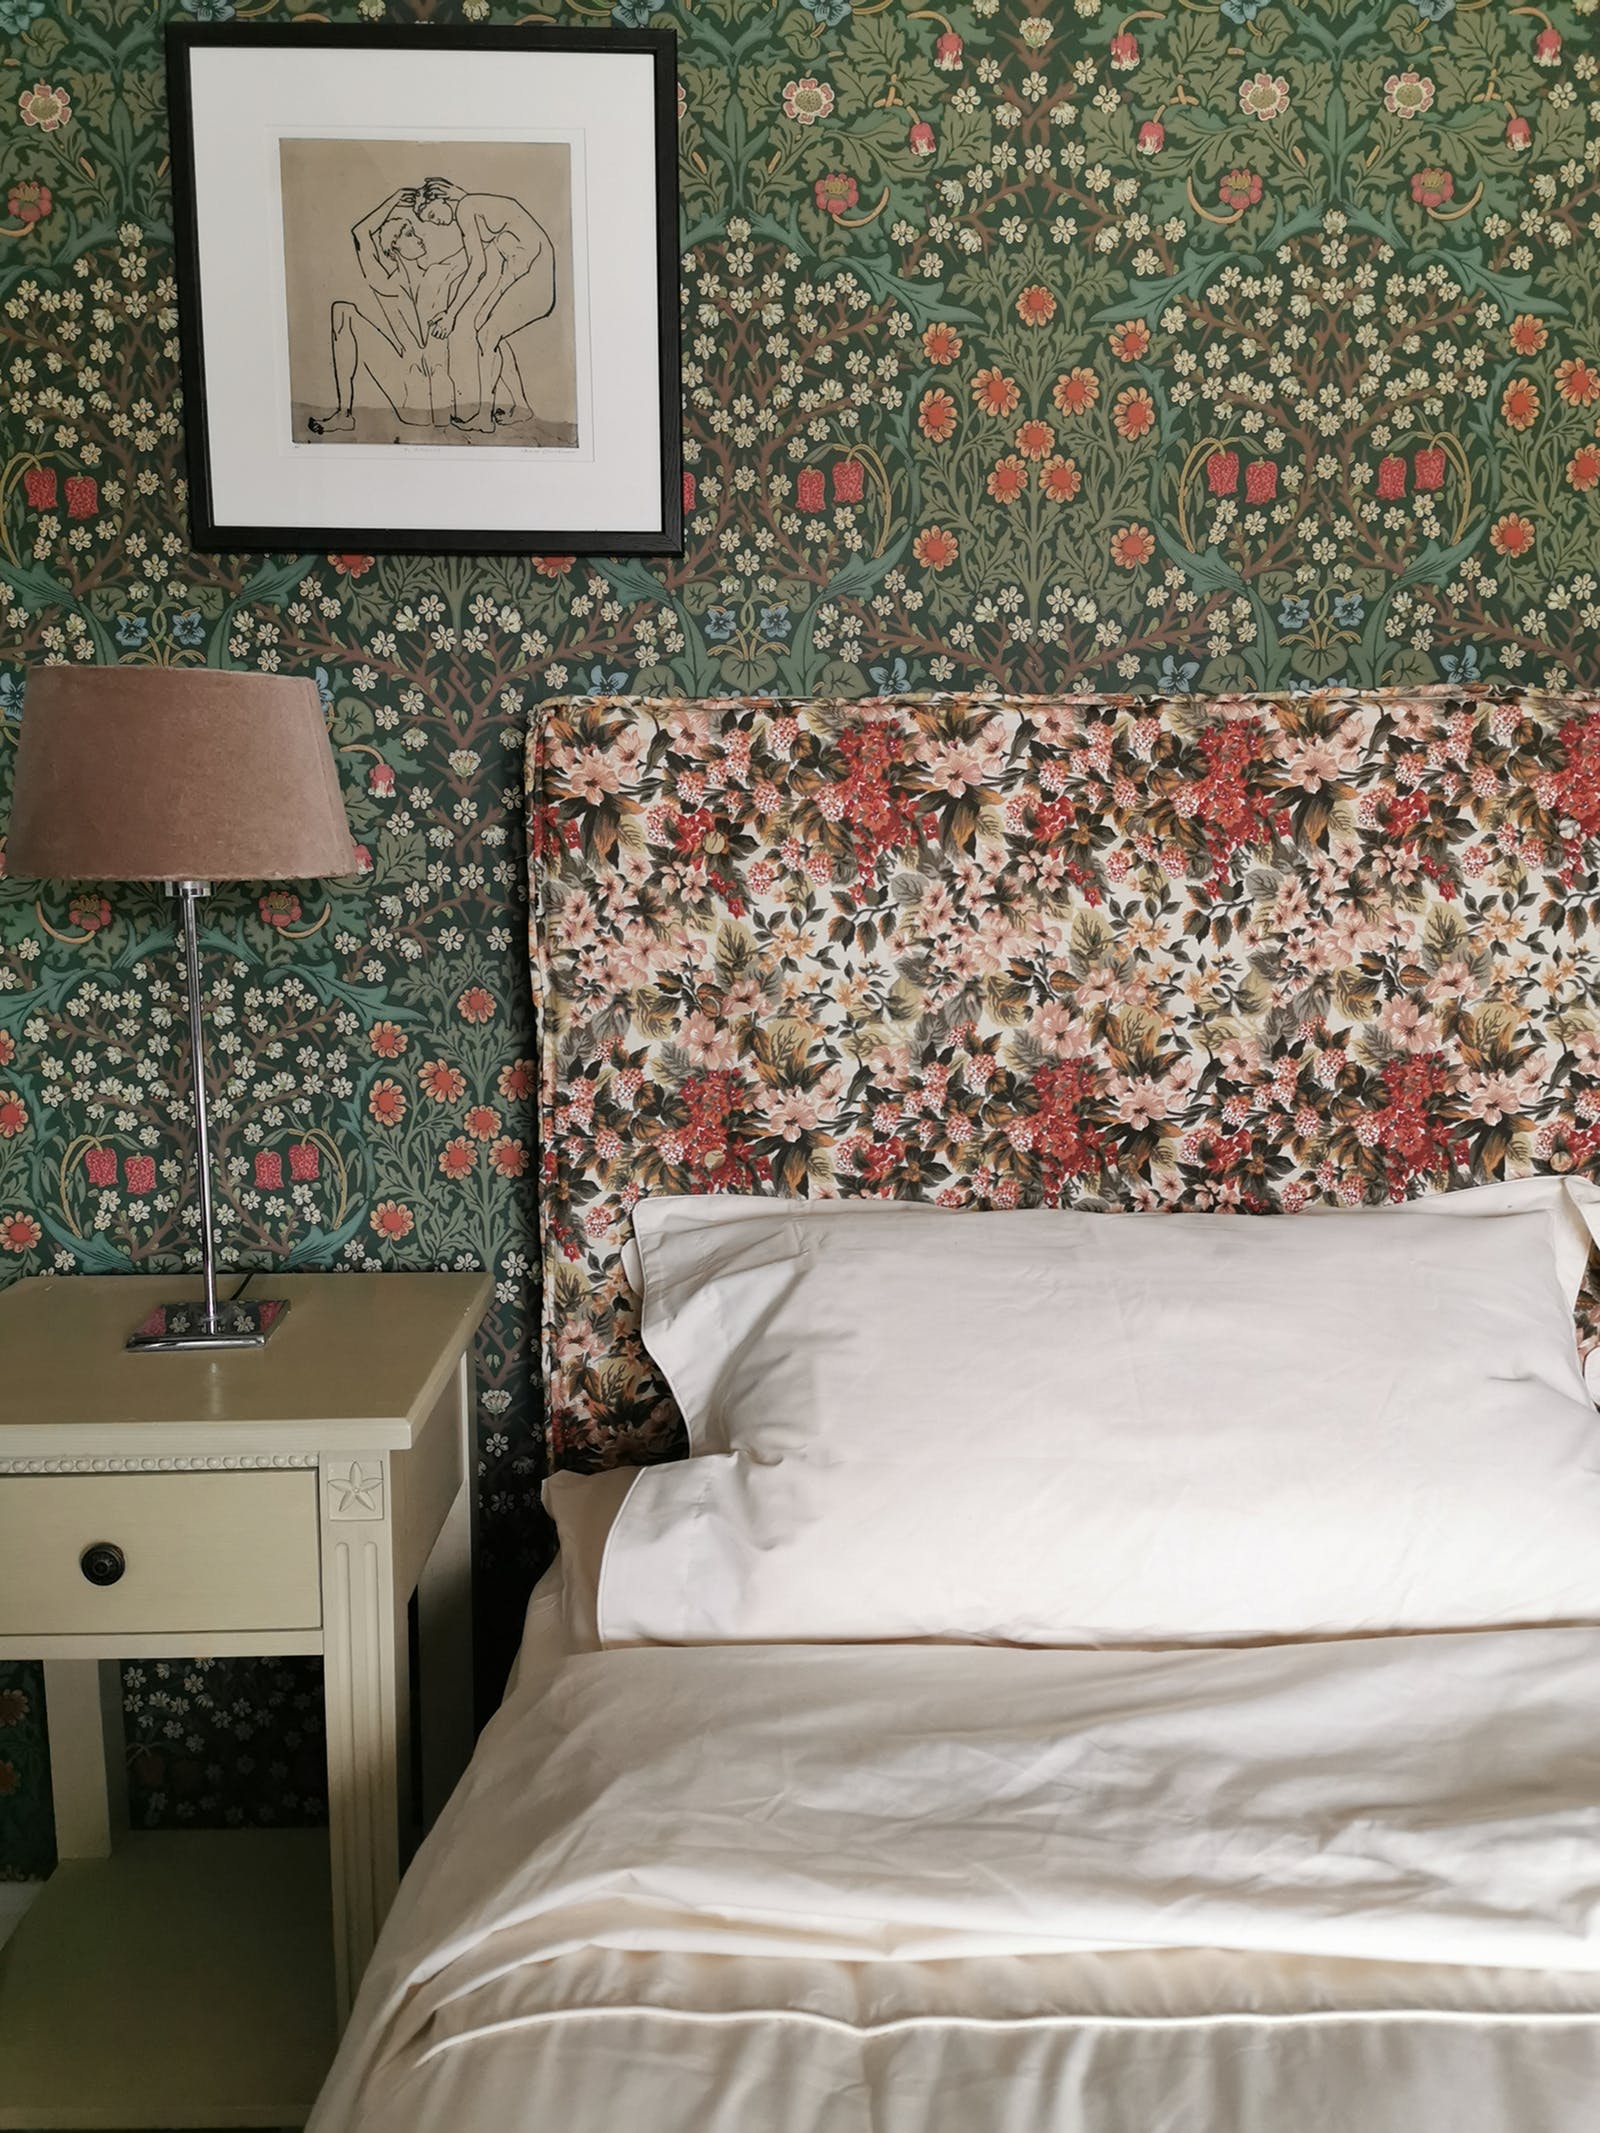 bedroom with a floral headboard and a floral patterned wallpaper with artwork